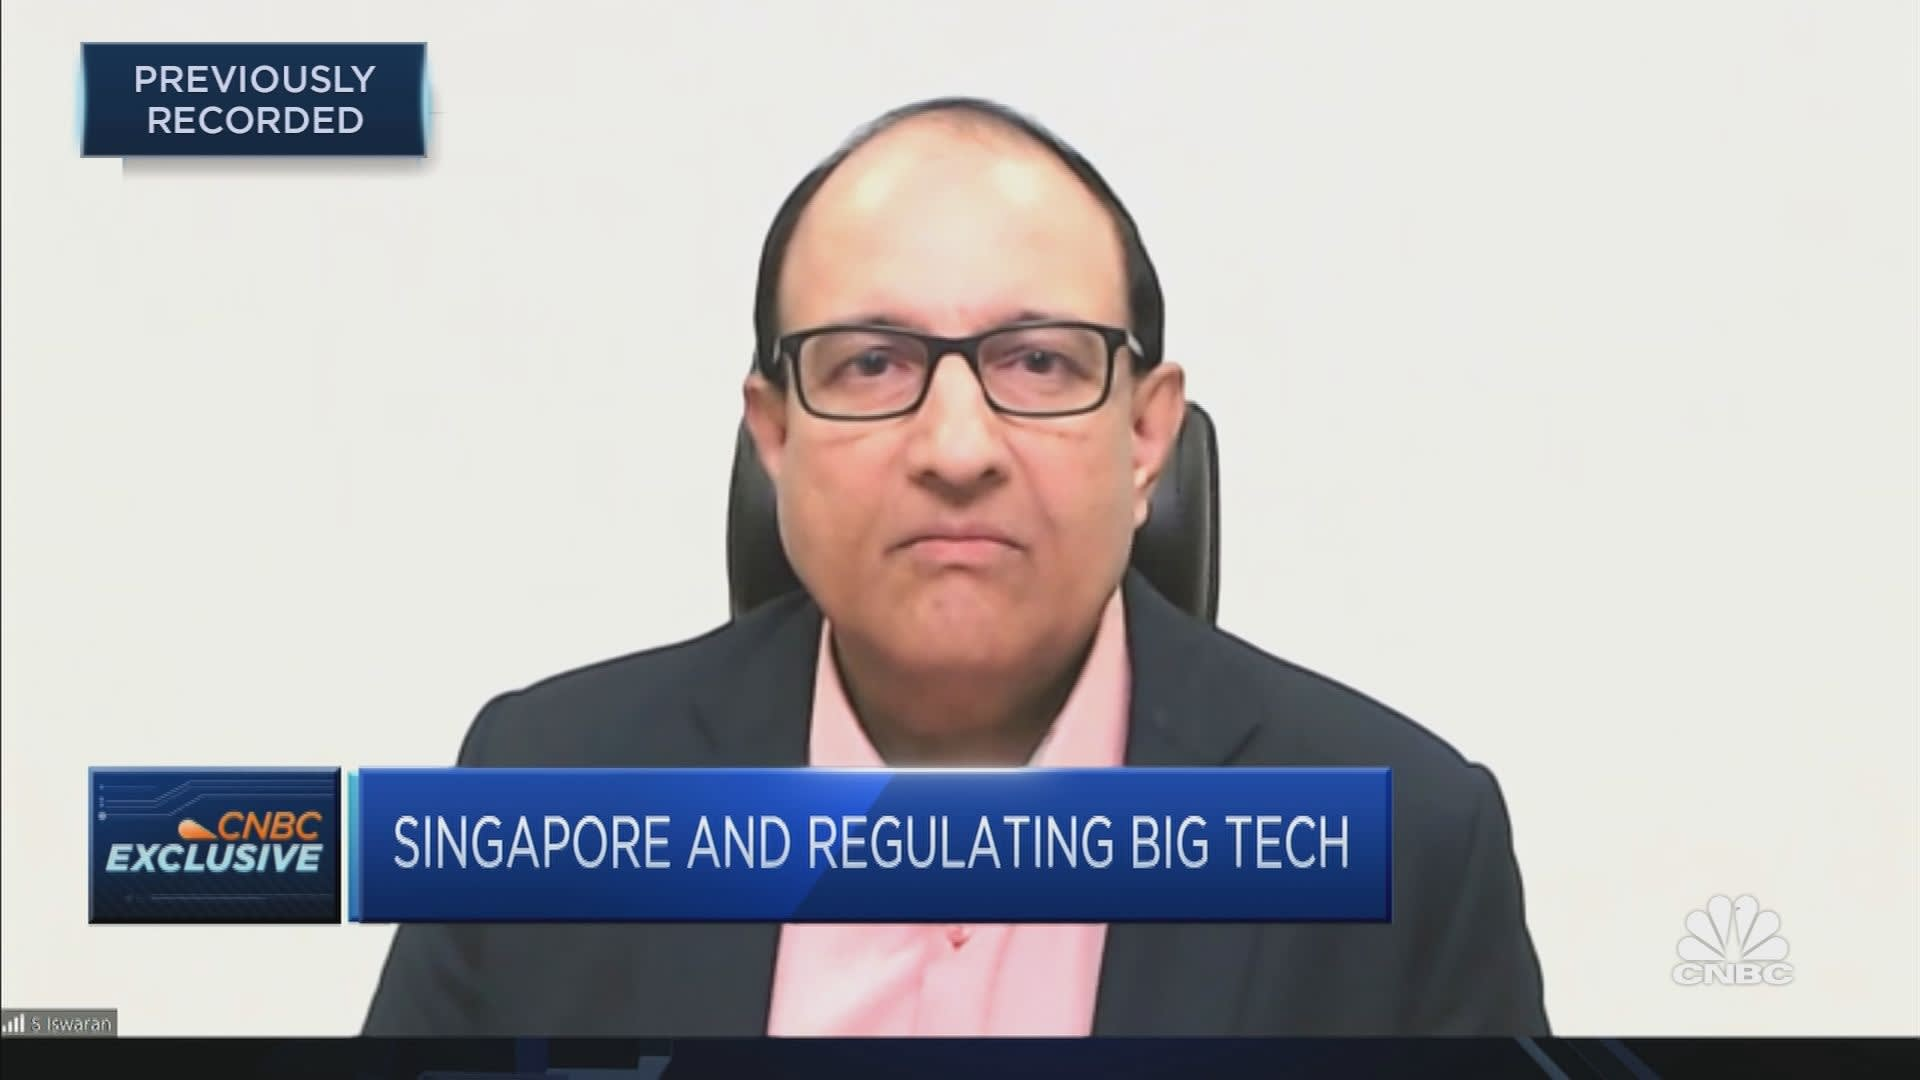 Singapore has a 'constructive relationship' with Big Tech, minister says